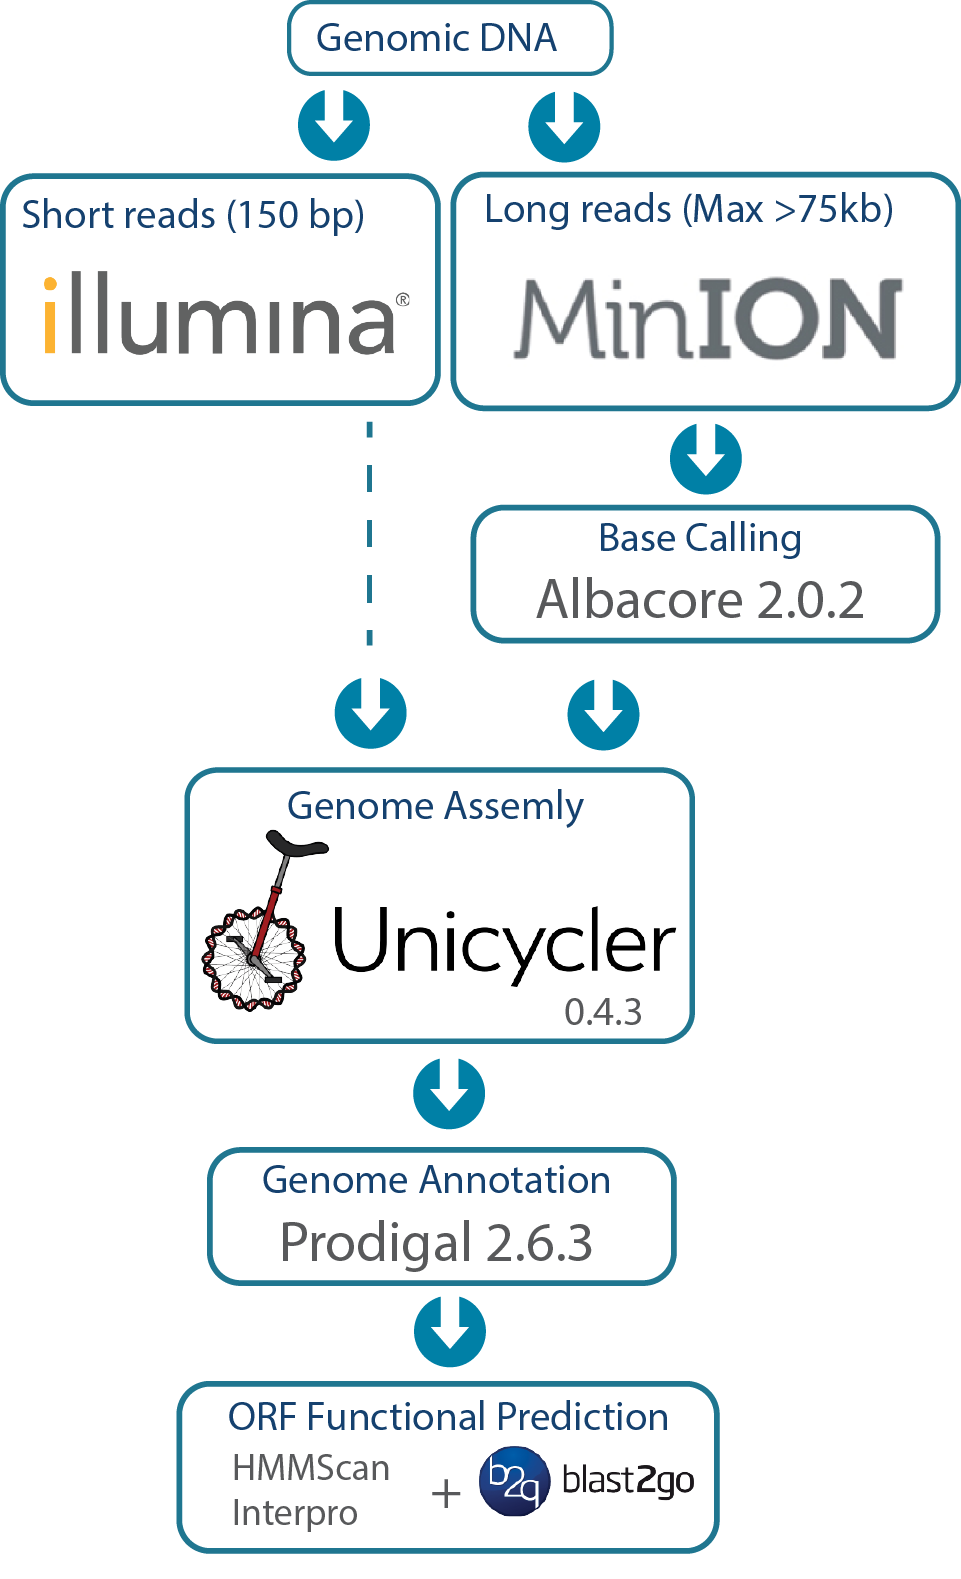 FusoPortal genome assembly and annotation work flow